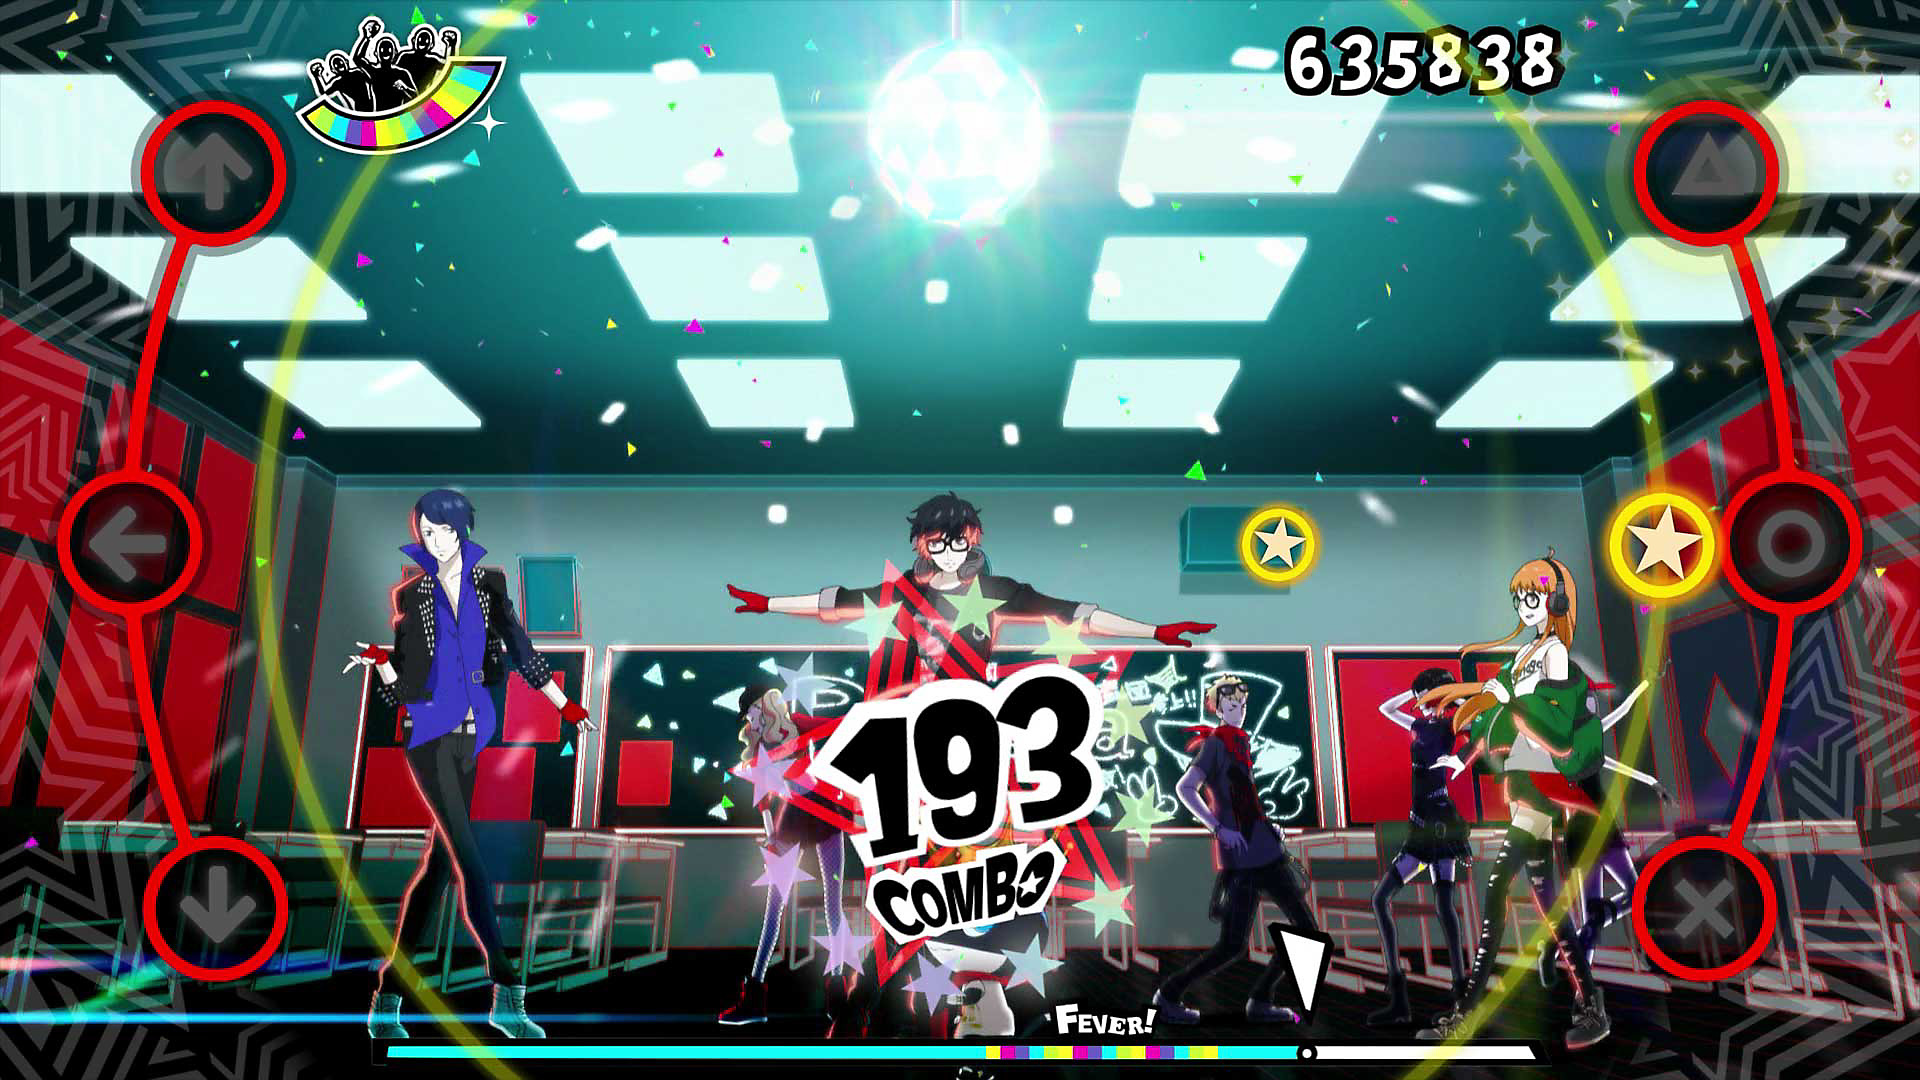 Phantom Thieves dancing together in a classroom